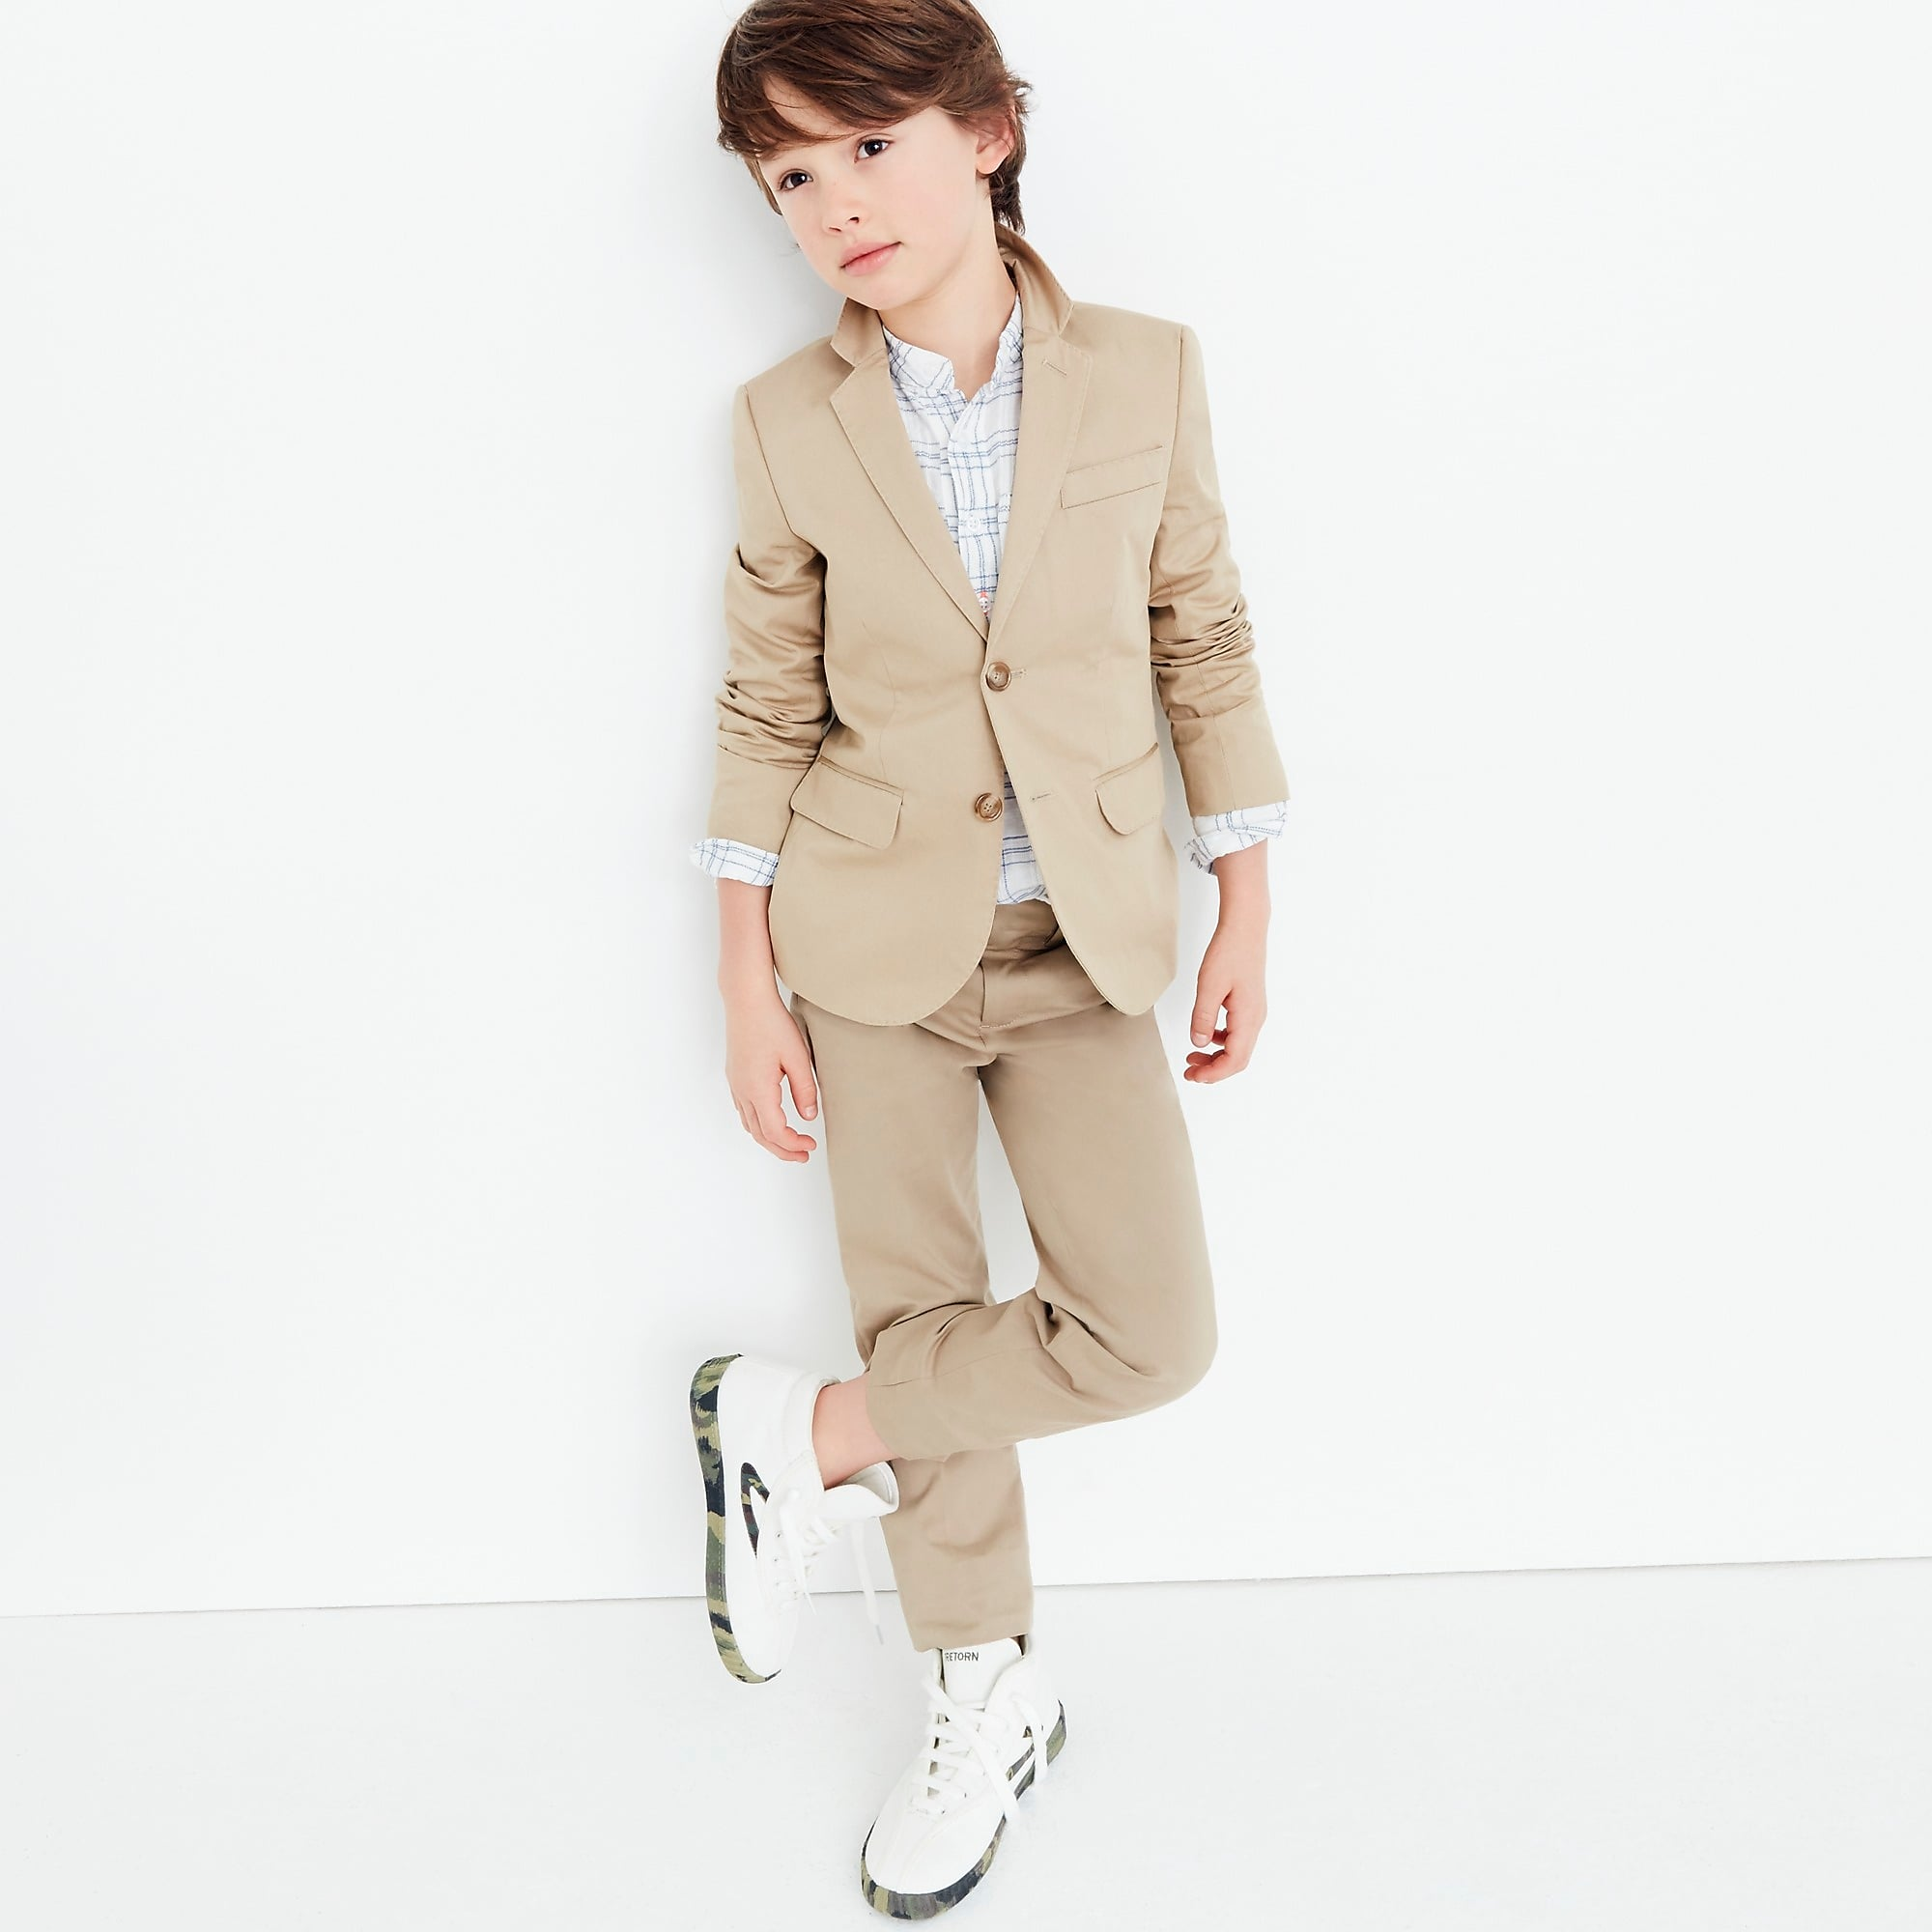 Suit Jacket and Suit Pant in Italian Stretch Chino